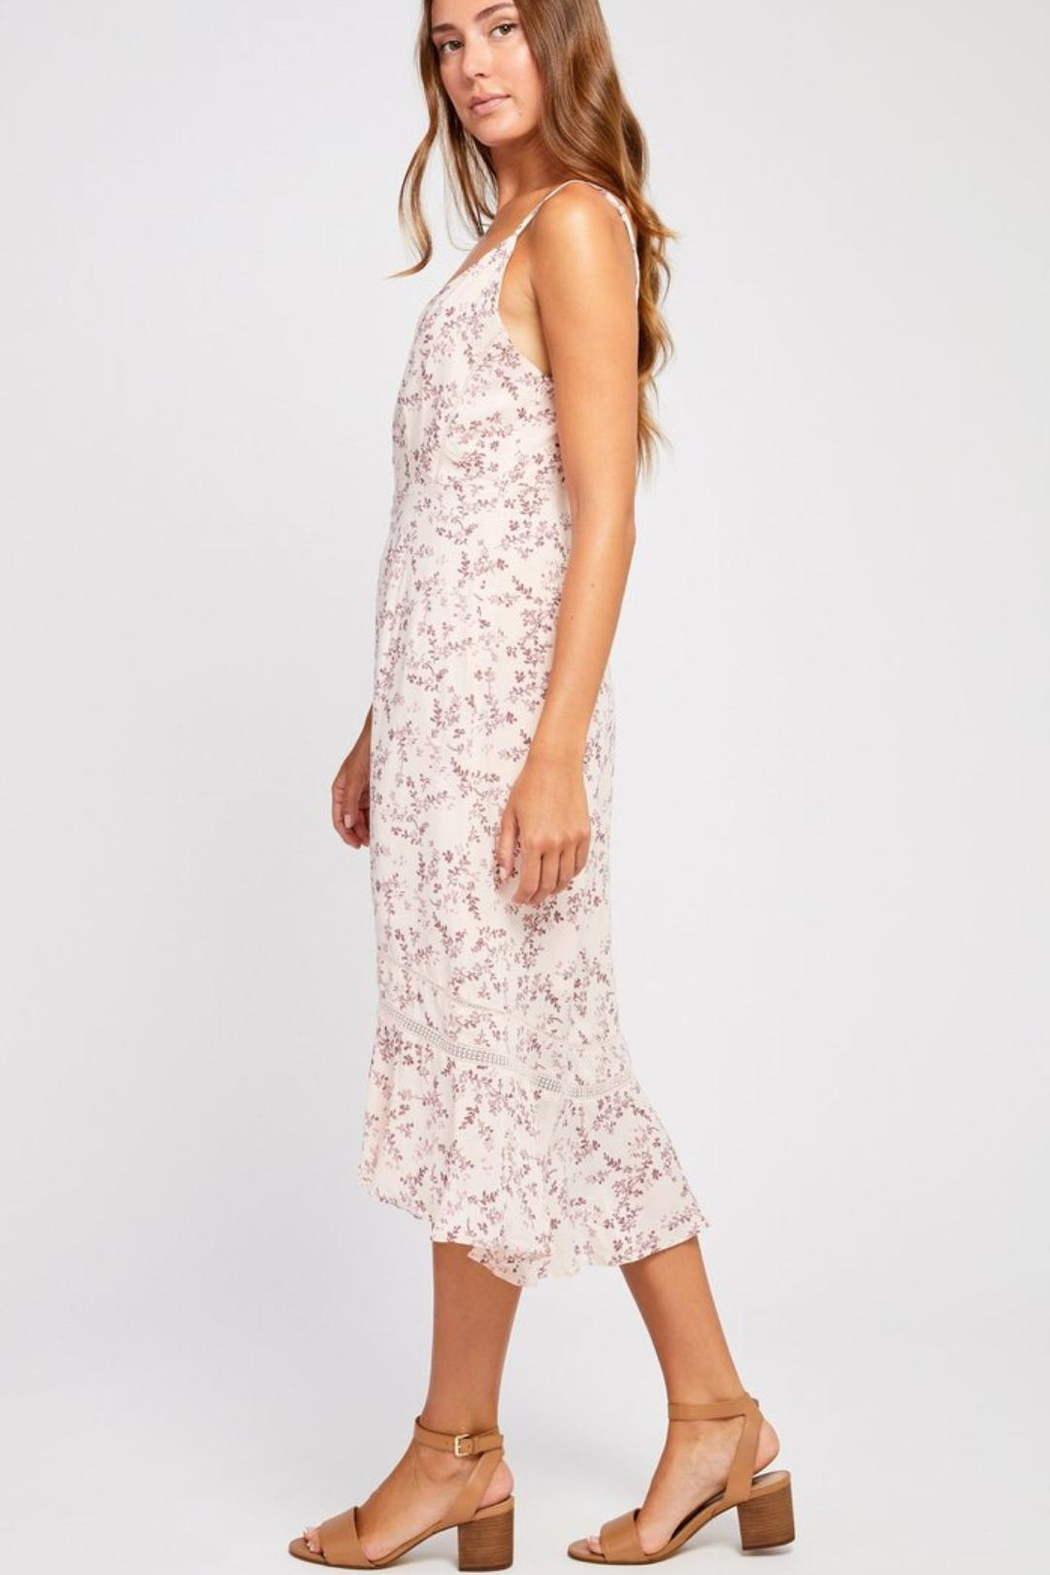 Gentle Fawn Pink Floral Dress - Front Full Image